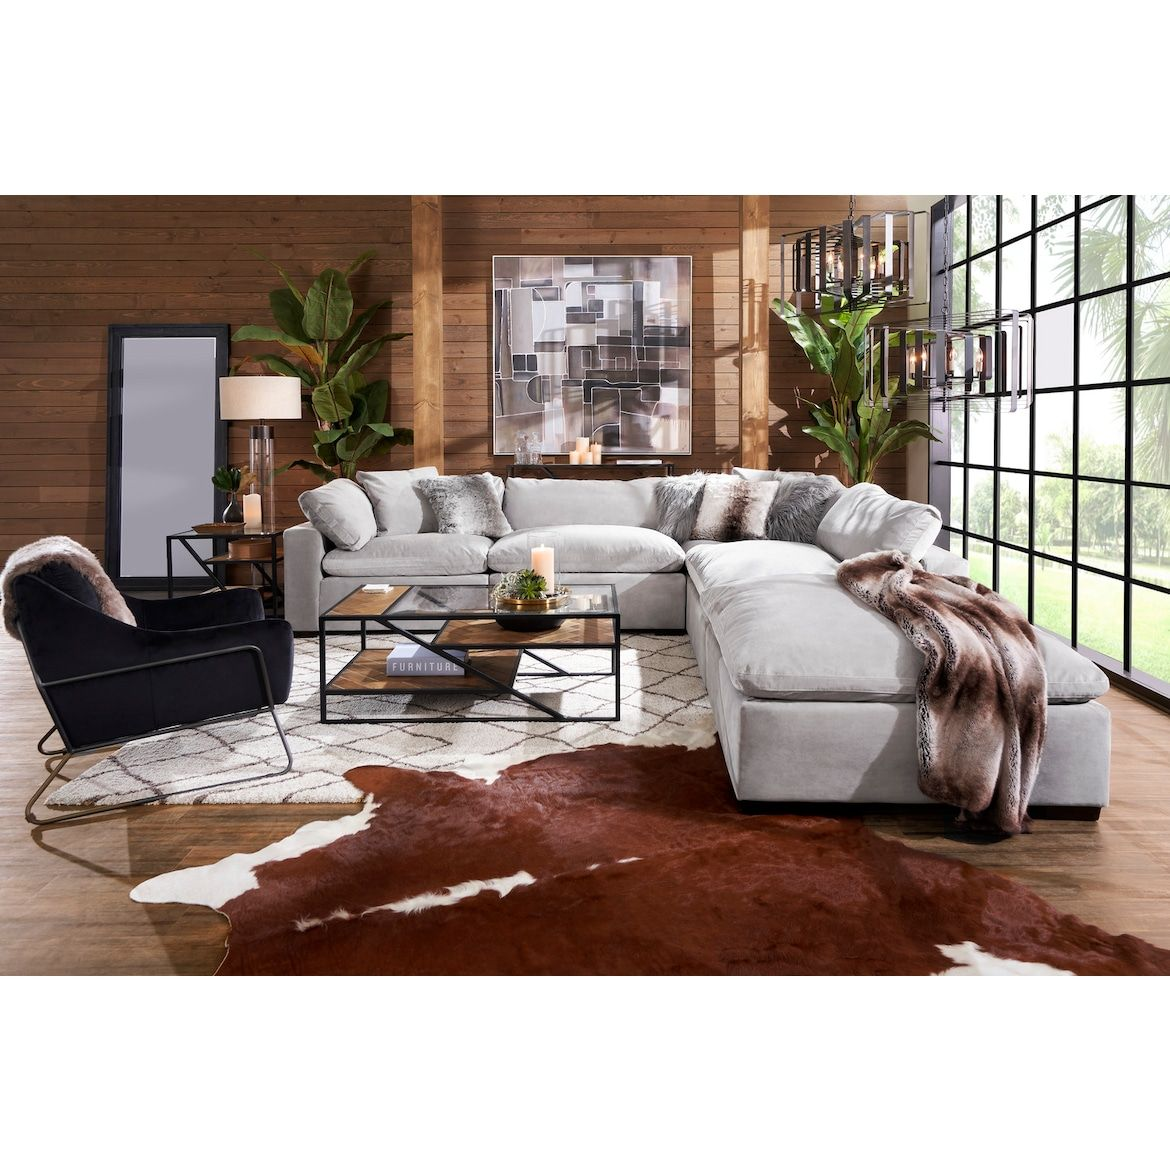 Plush Ottoman The Big Comfy Couch Cozy Furniture Deep